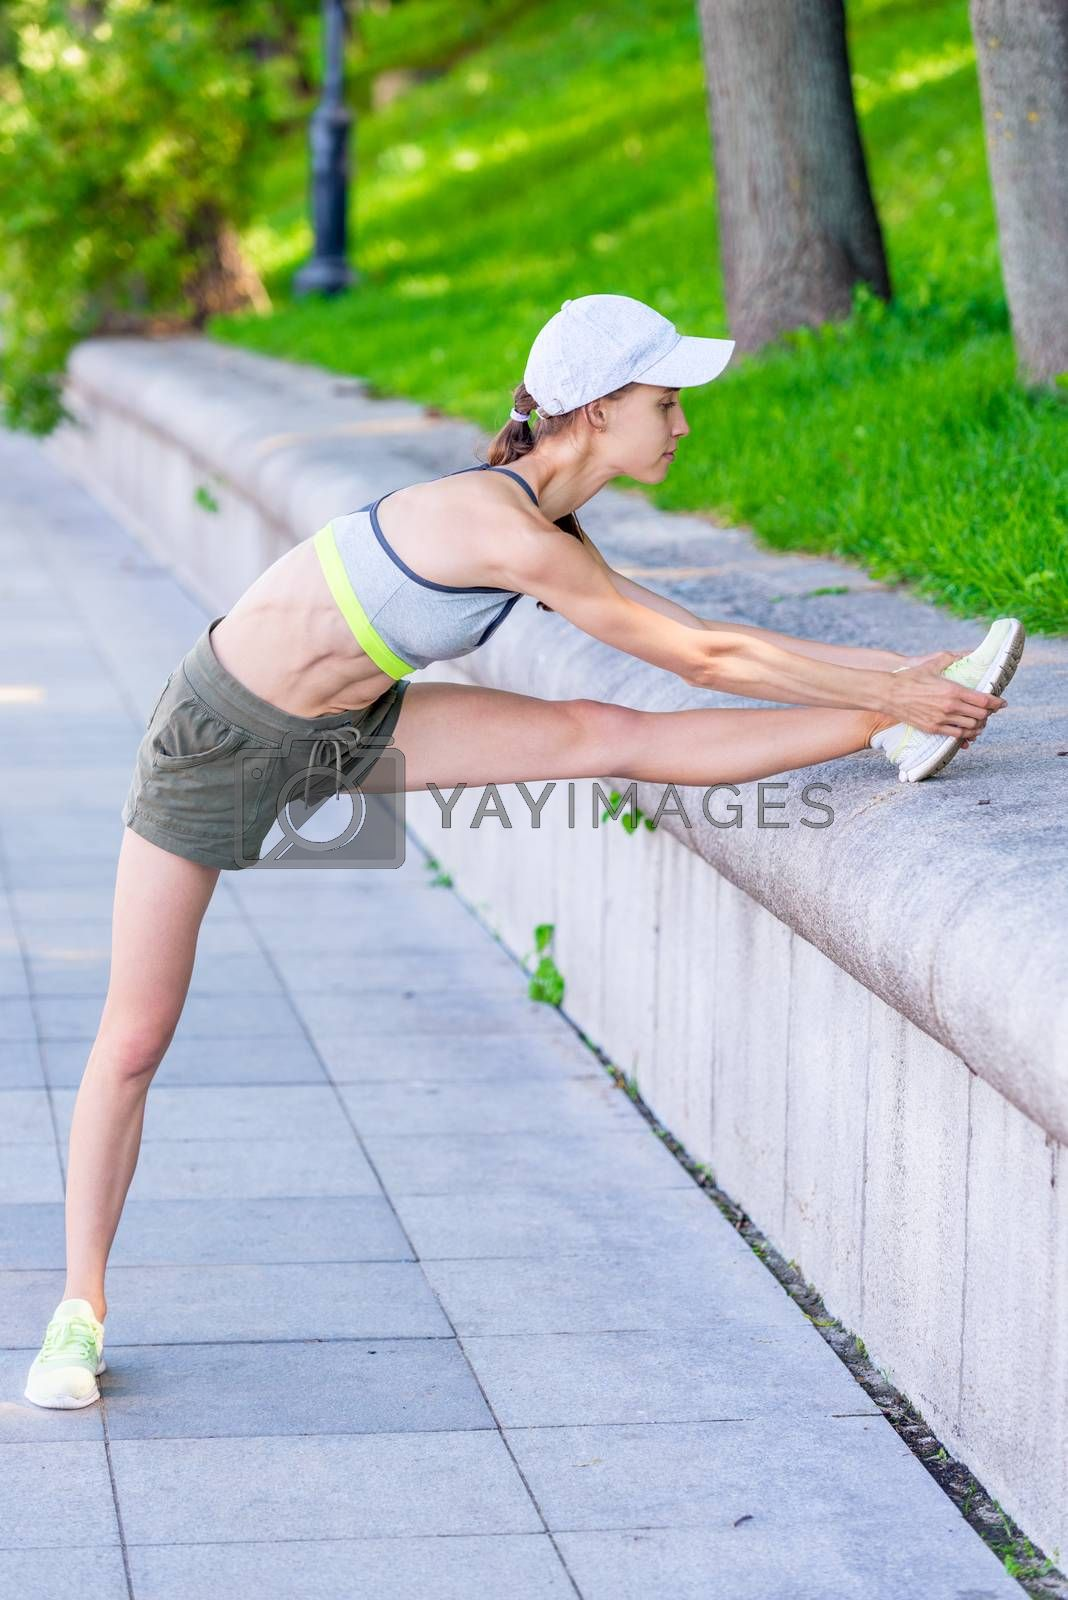 exercises on the city embankment, a female athlete stretches and by Labunskiy K.